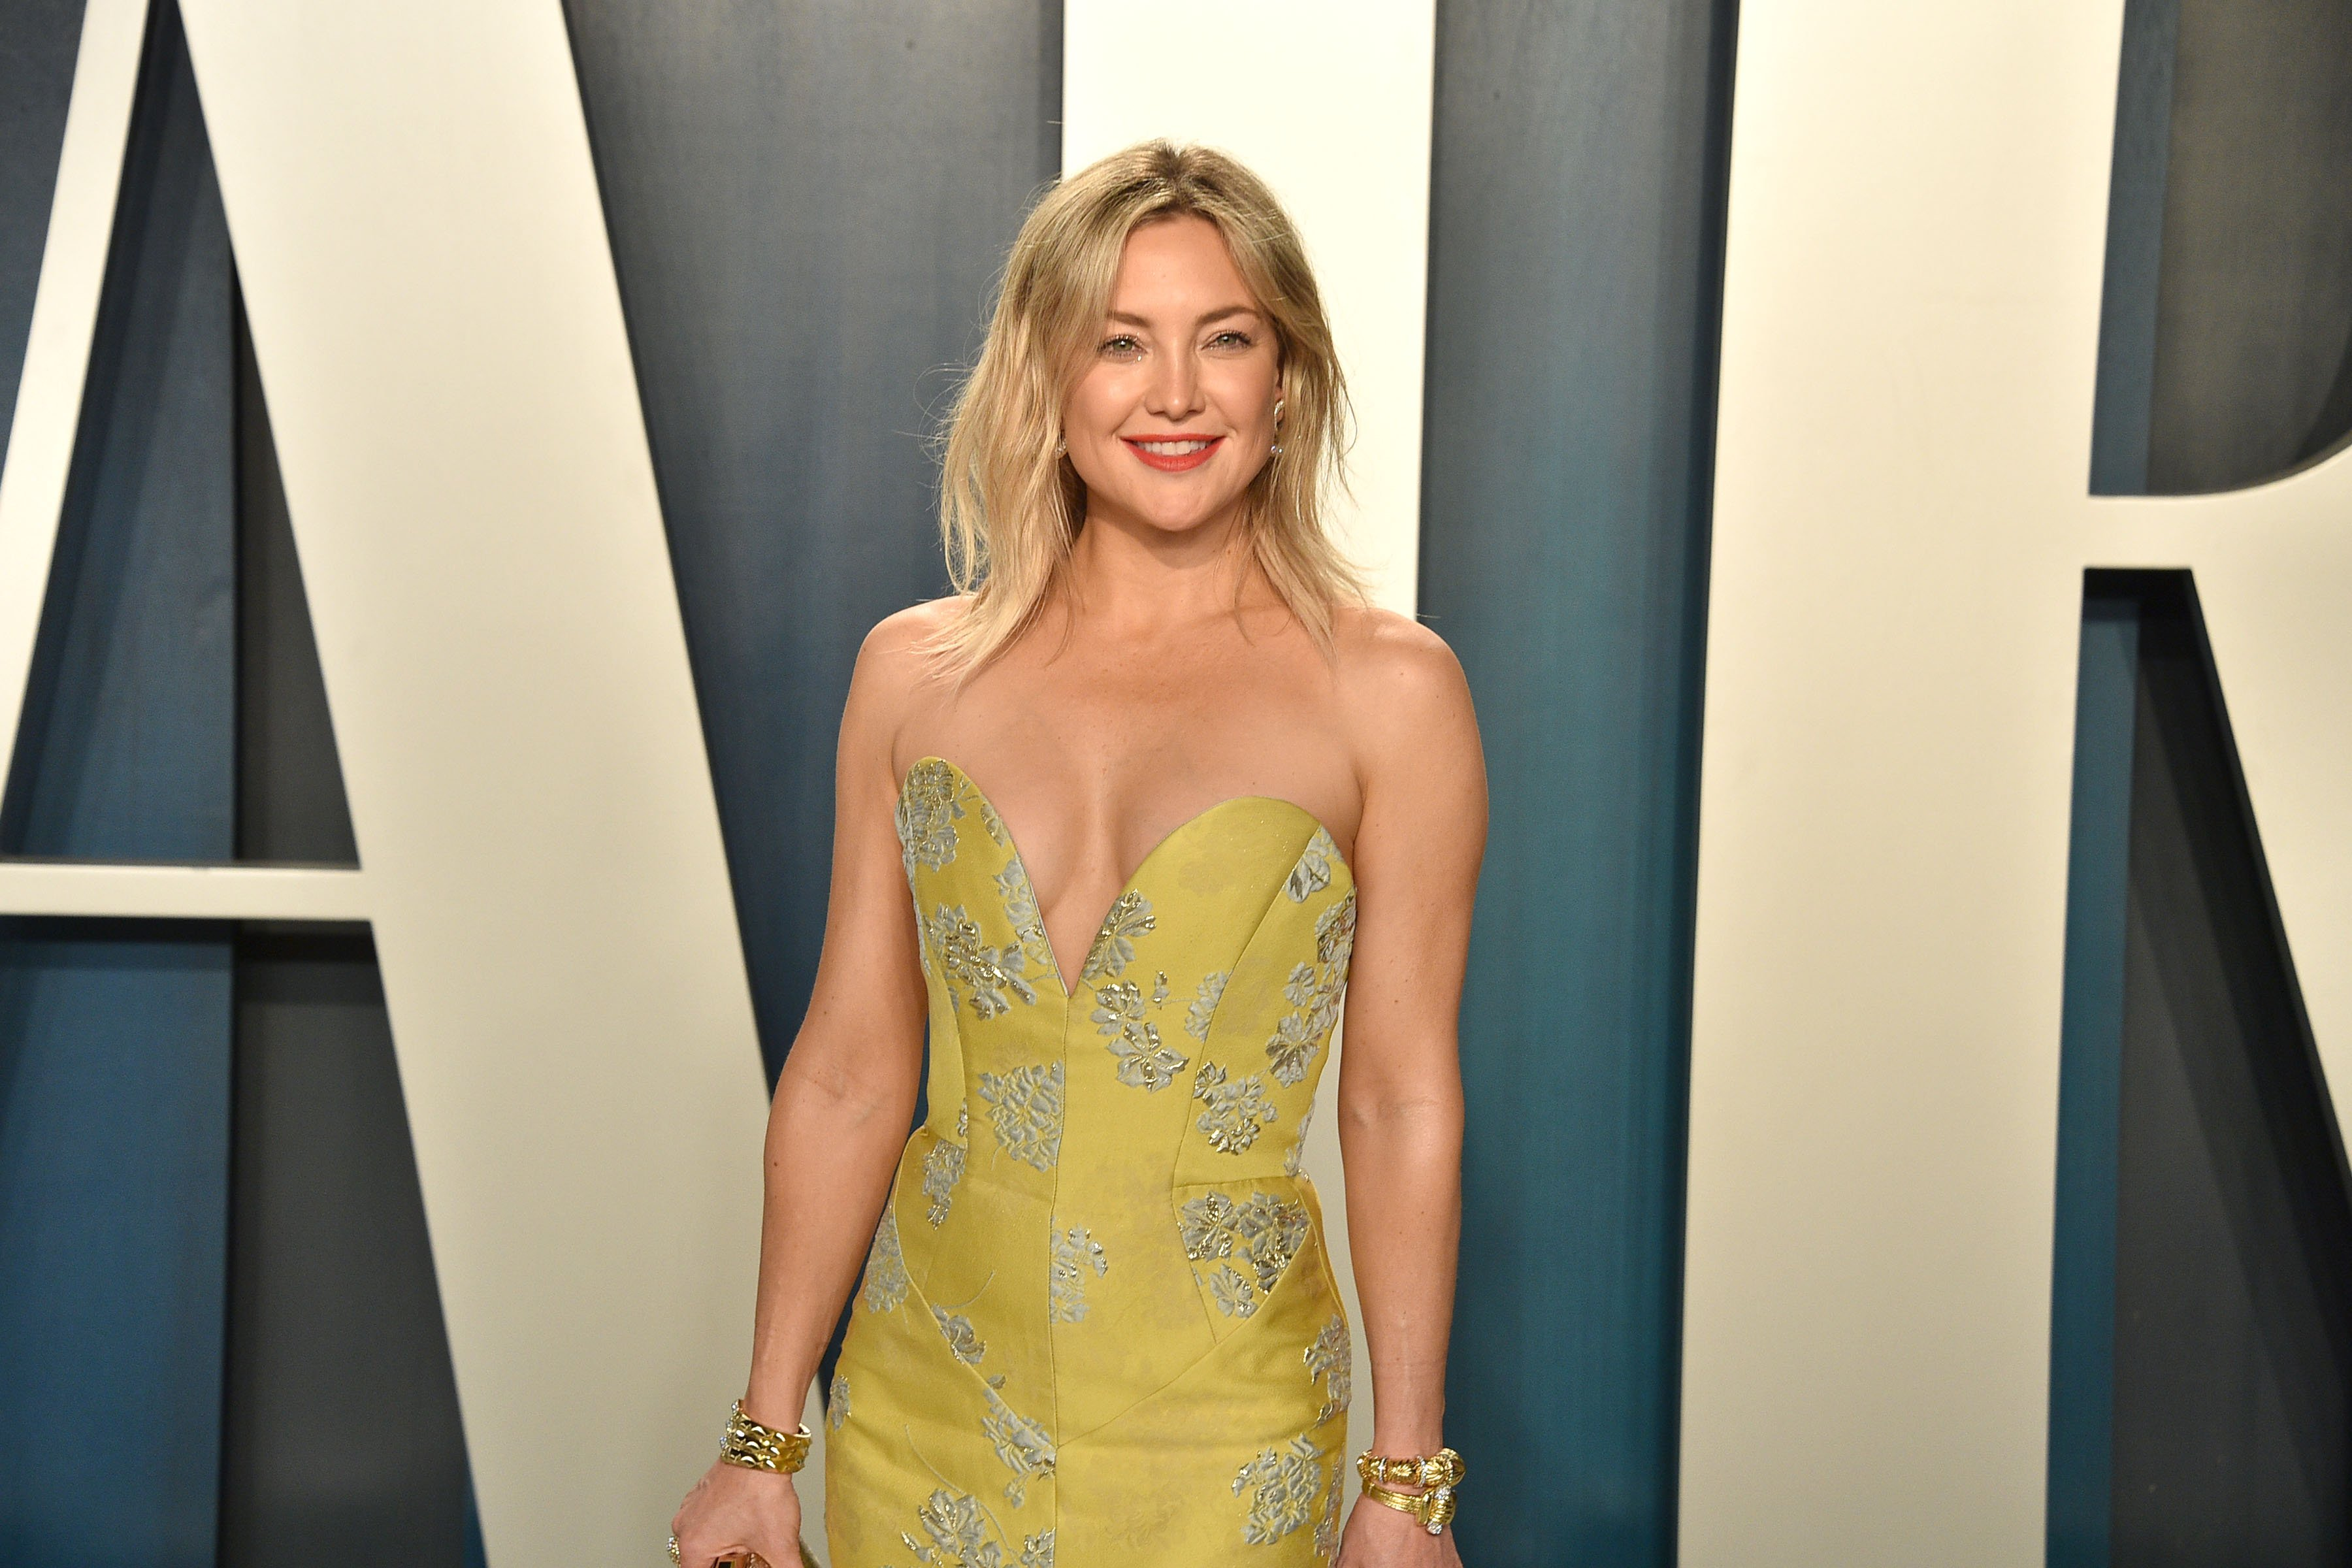 Kate Hudson pictured at the 2020 Vanity Fair Oscar Party at Wallis Annenberg Center, 2020, California. | Photo: Getty Images